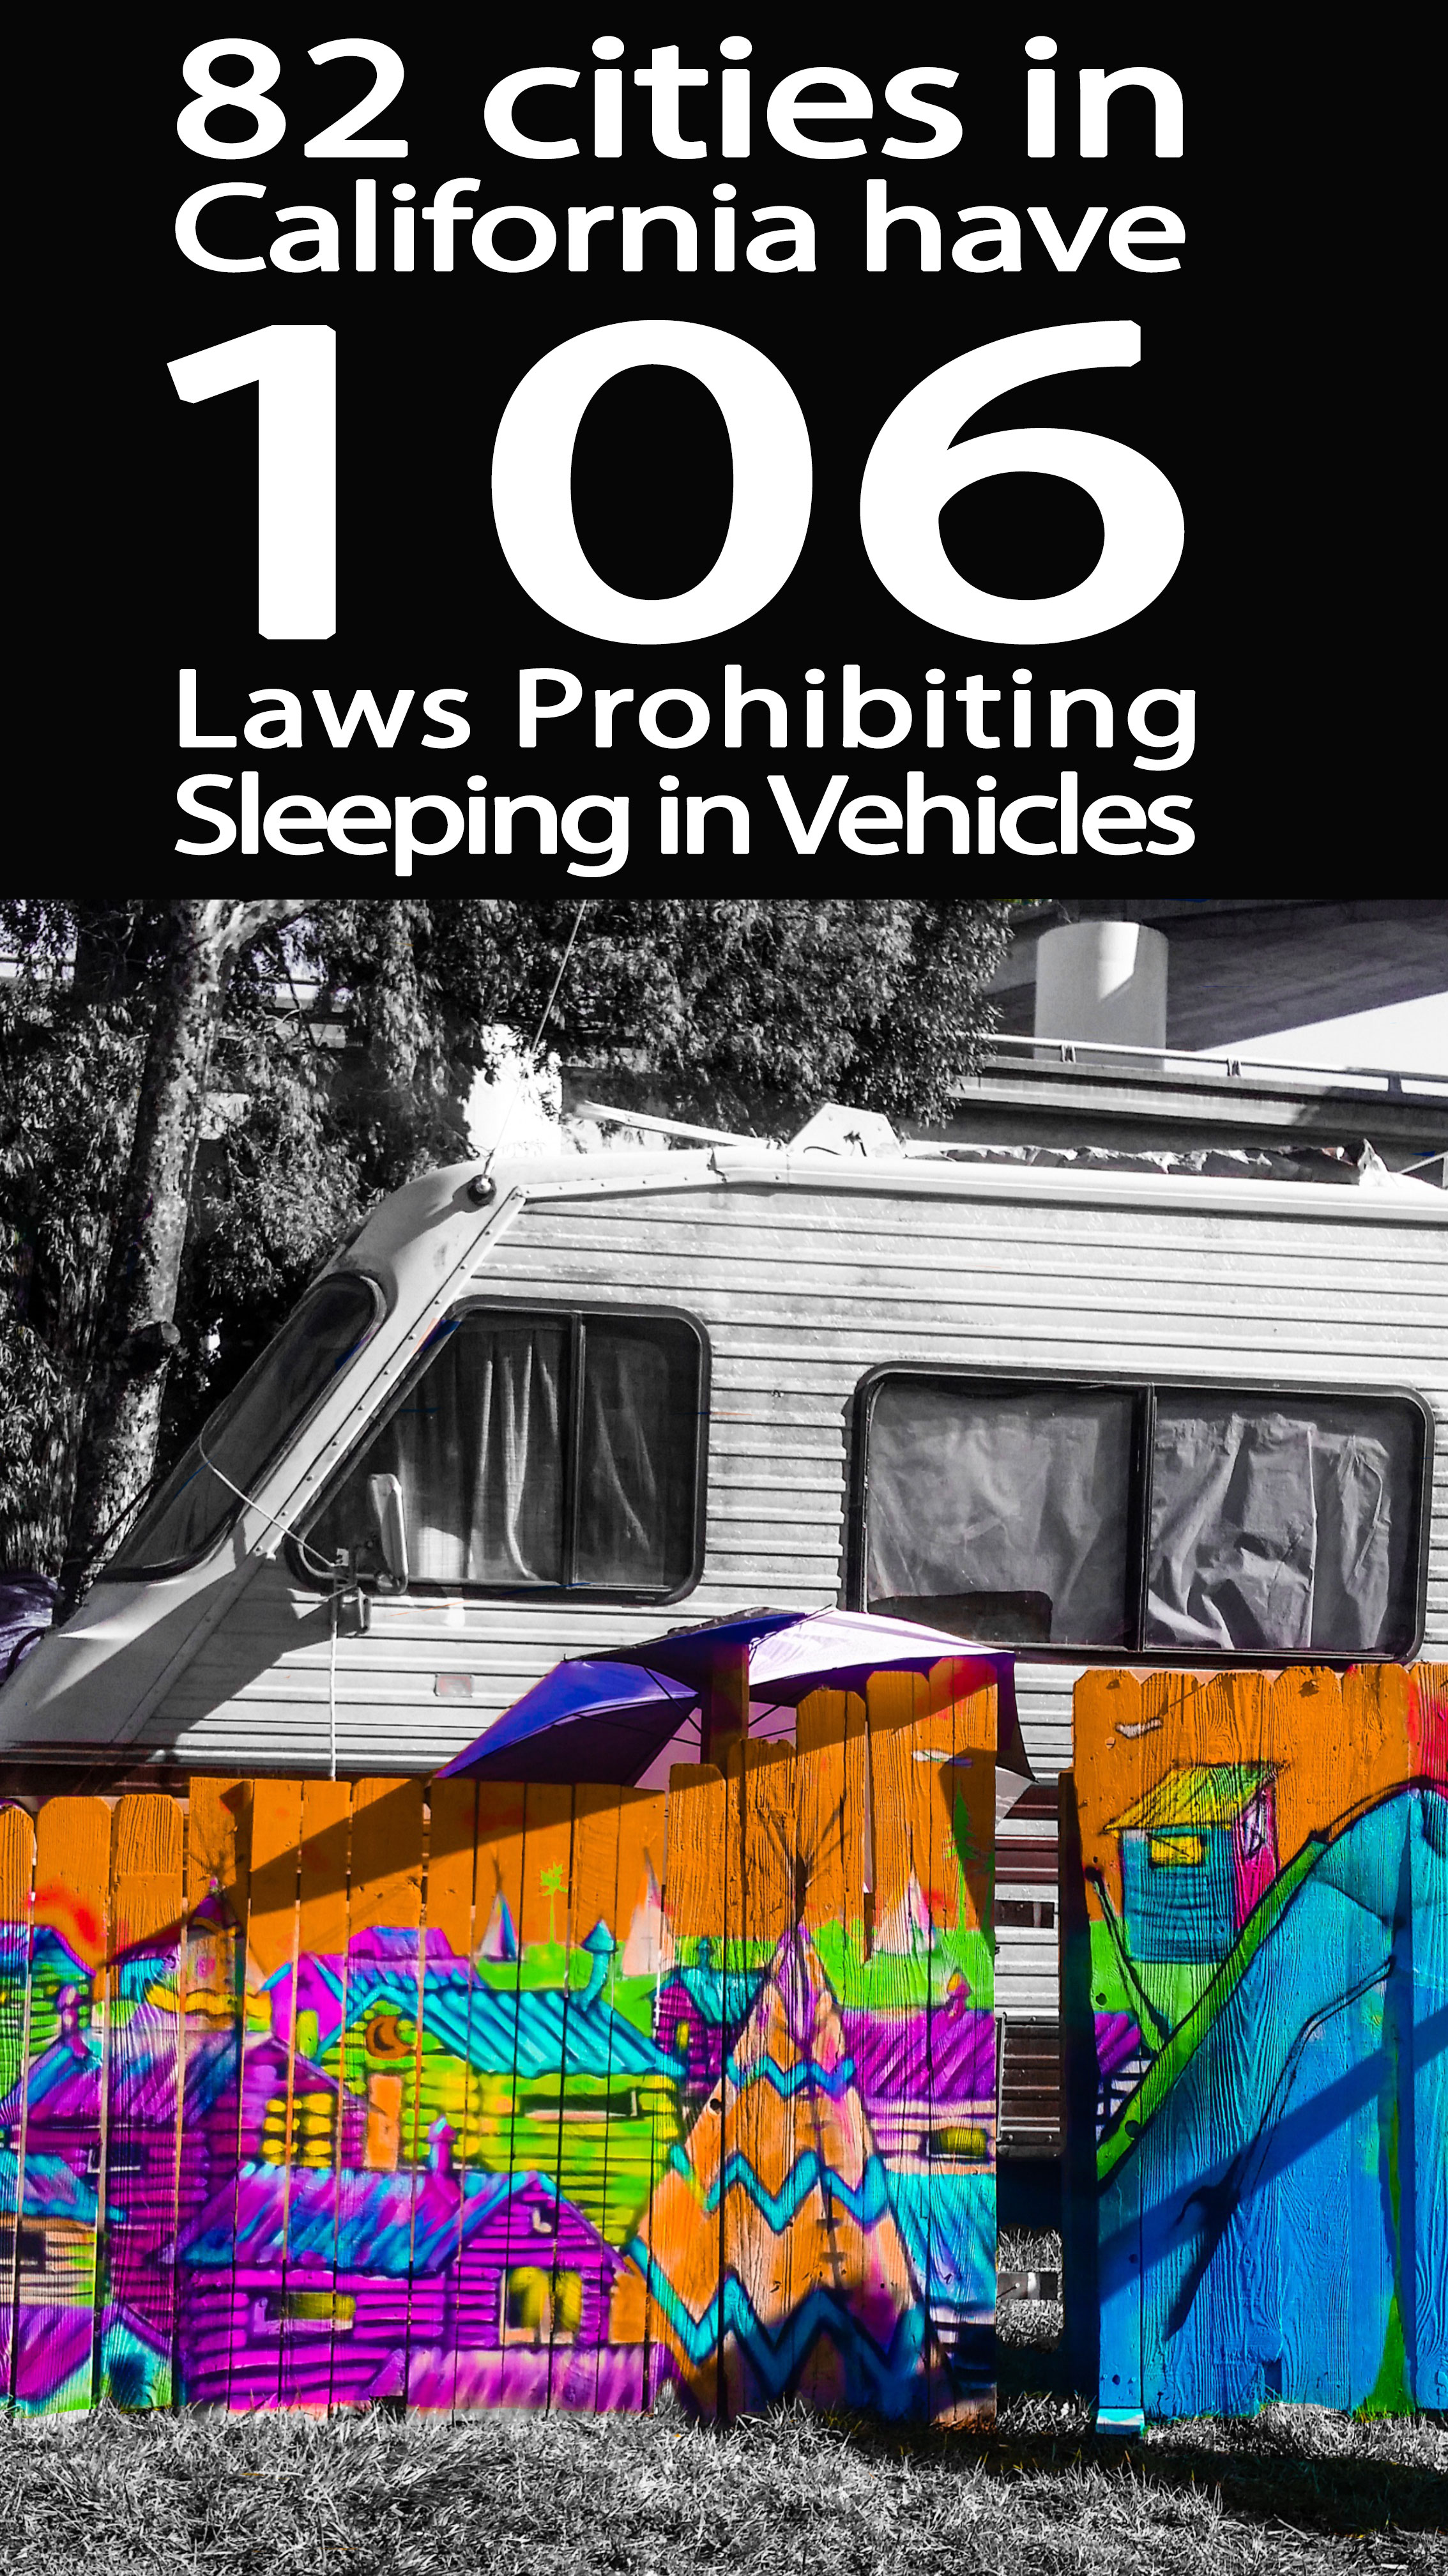 WRAP | California Homeless Bill of Rights - WRAP